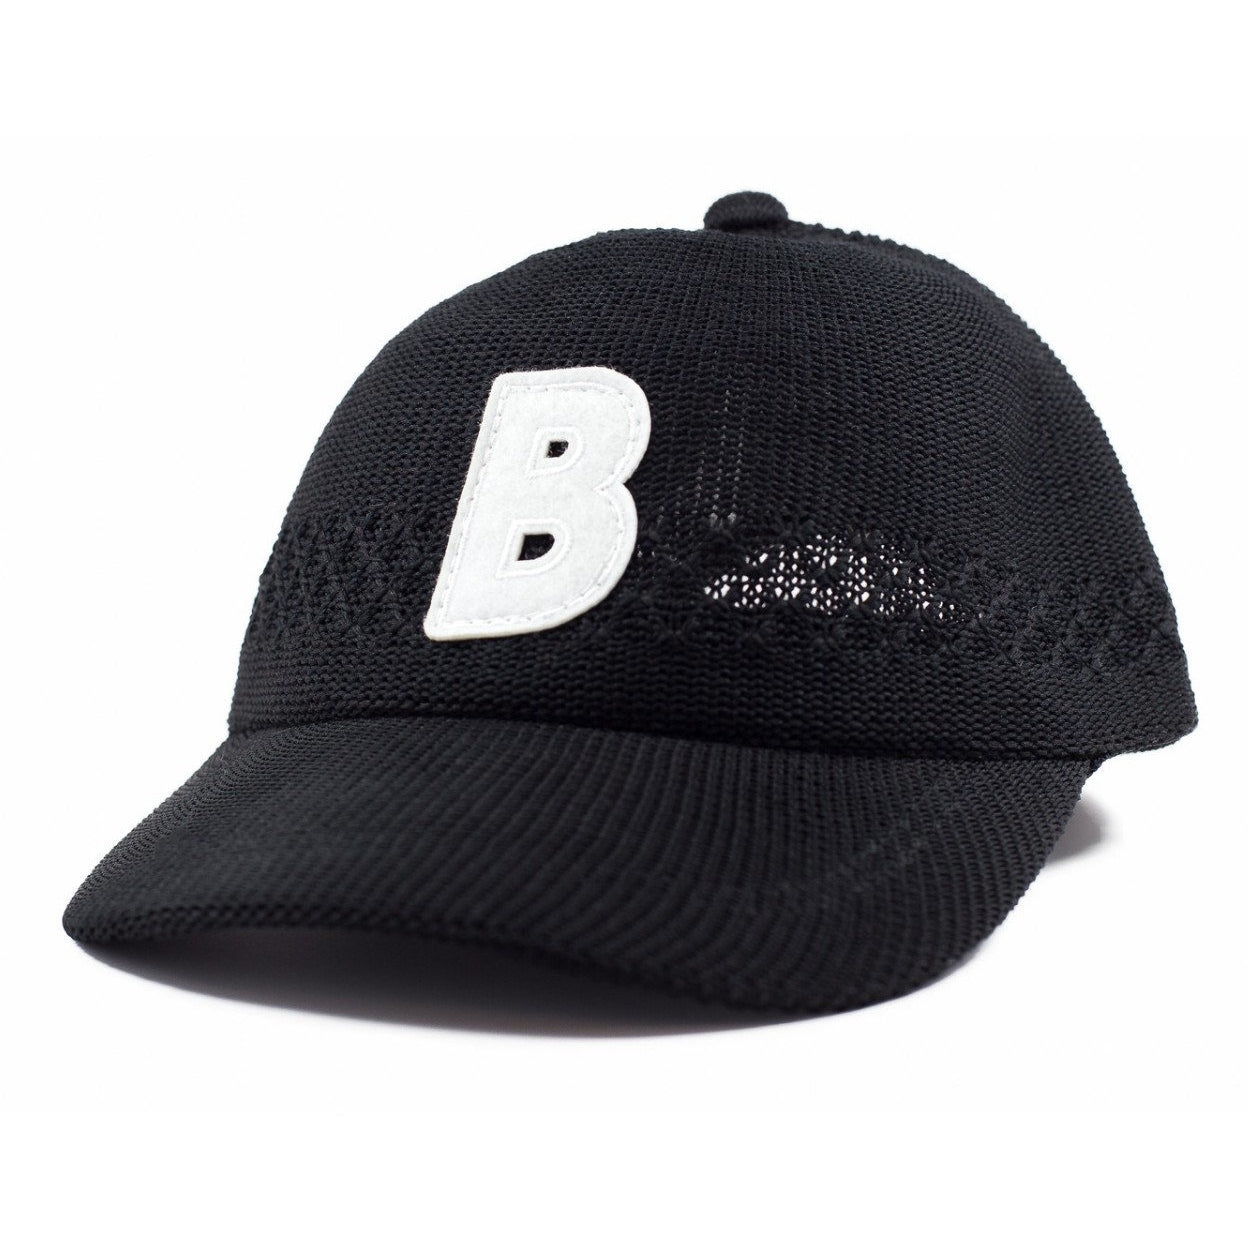 6-panel unconstructed Cotton african black mesh dad hat featuring BLED letter logo felt patch on the front and BLED logo embroidered on the back with adjustable strap closure. skate, skateboarding, hype, streetwear